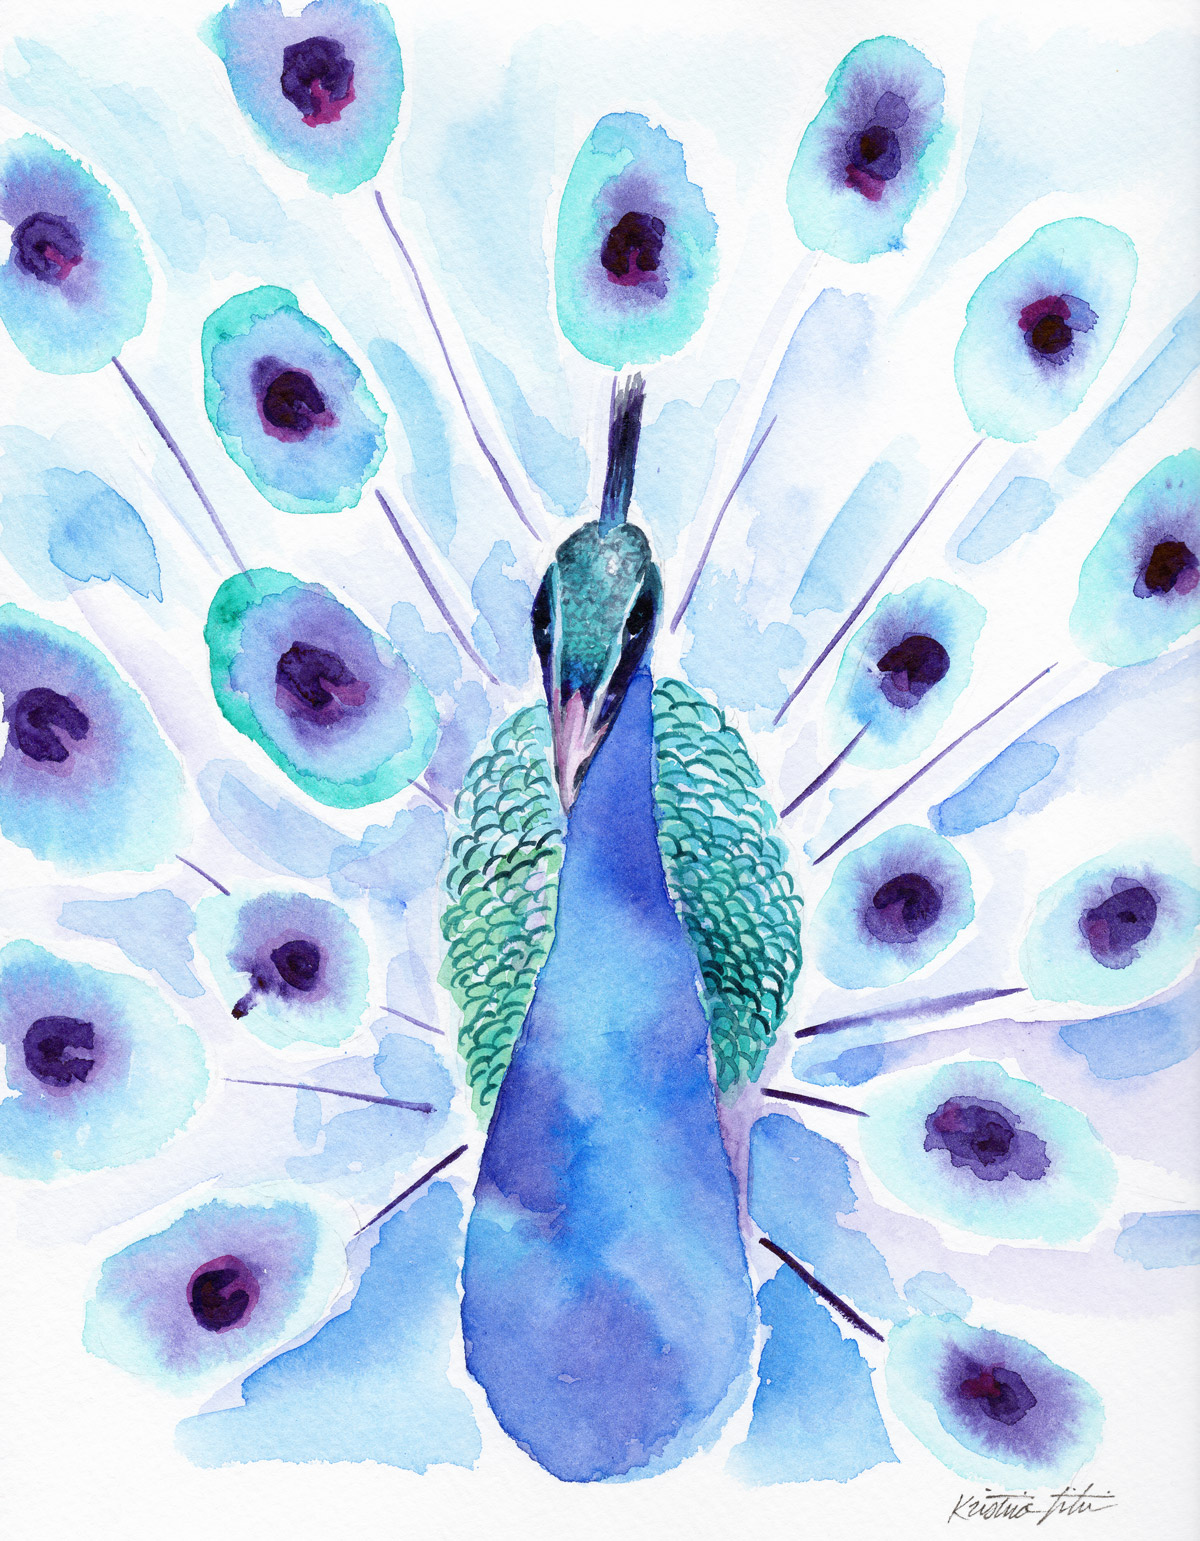 KLS_Animals_Peacock_SFW.jpg